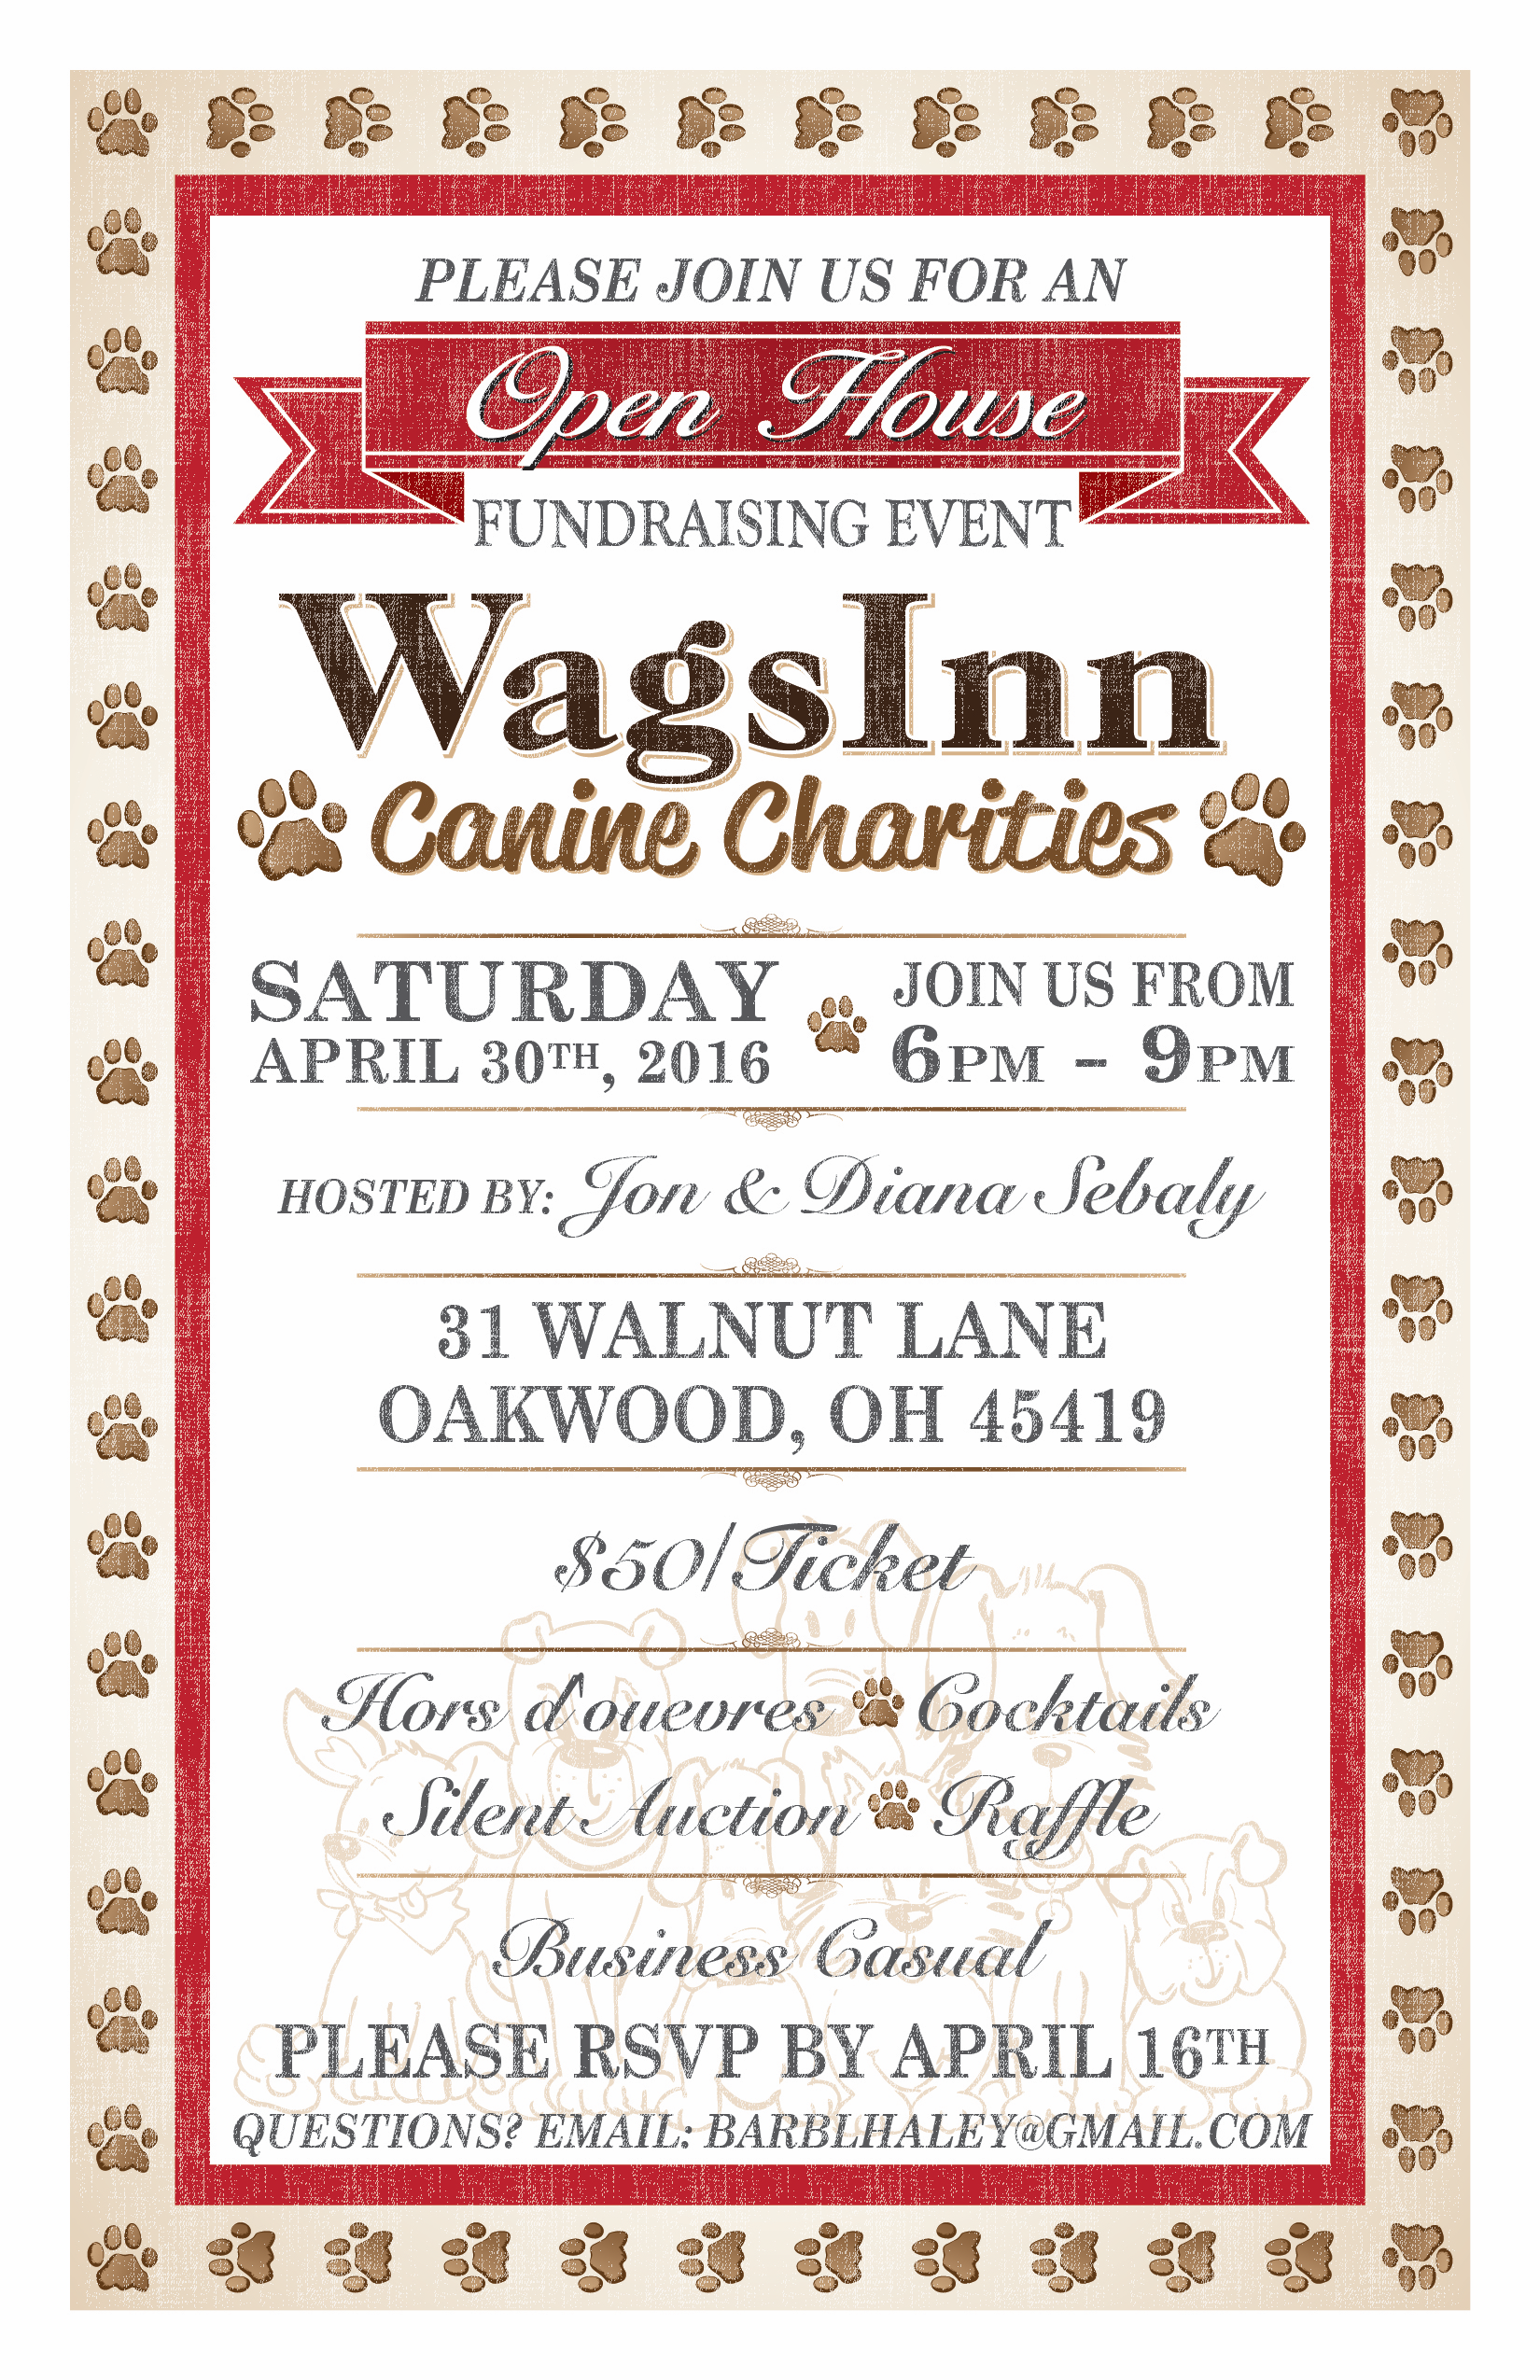 WagsInn Invite_final